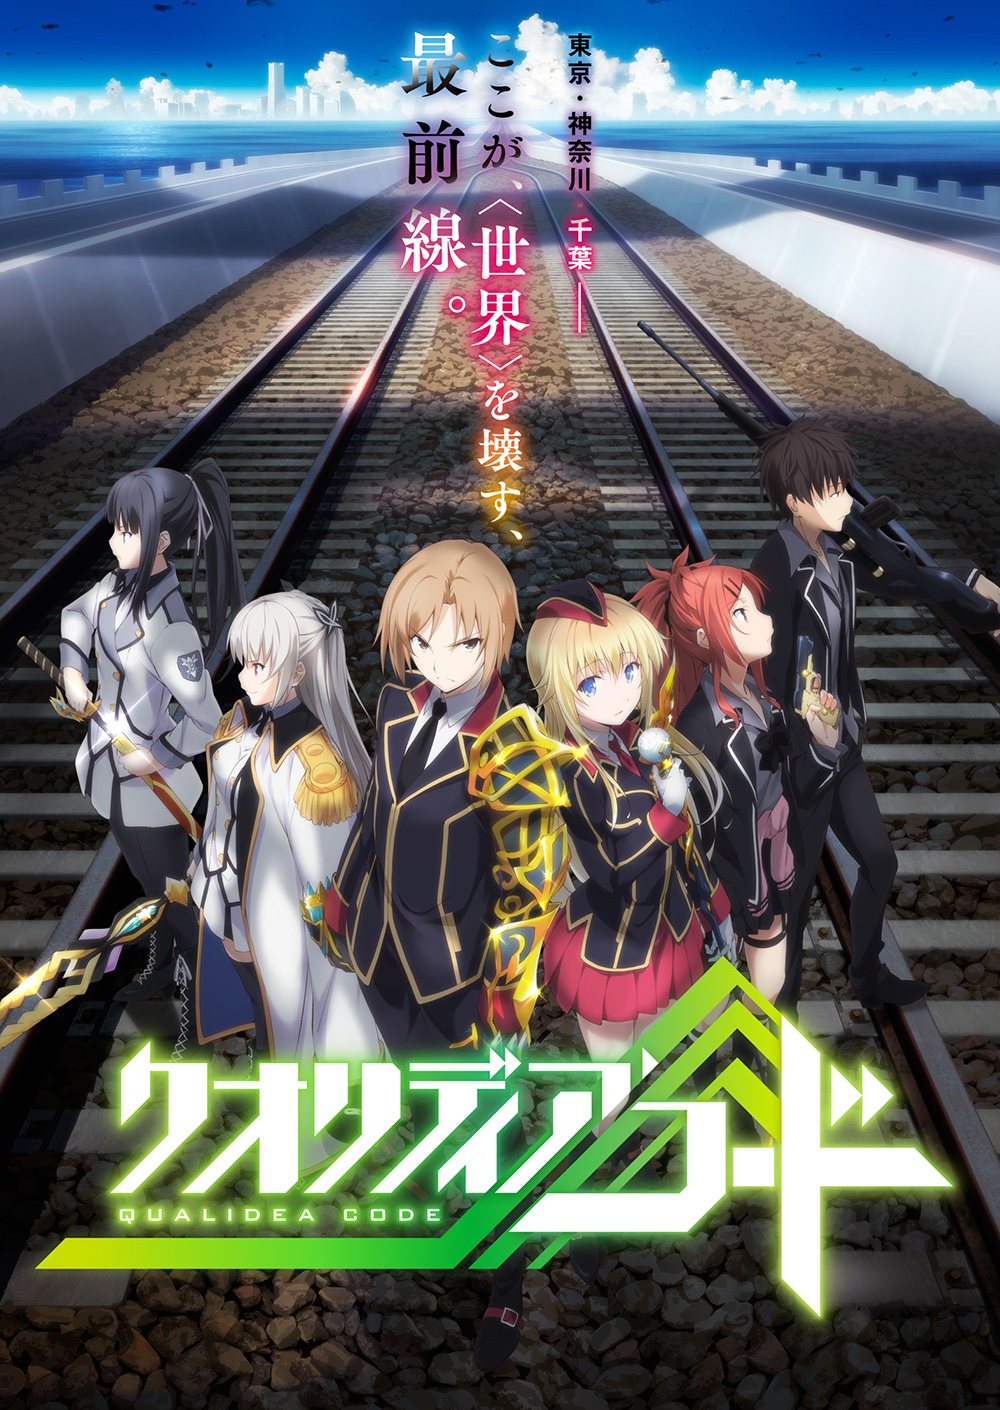 Qualidea-Code-Anime-Visual